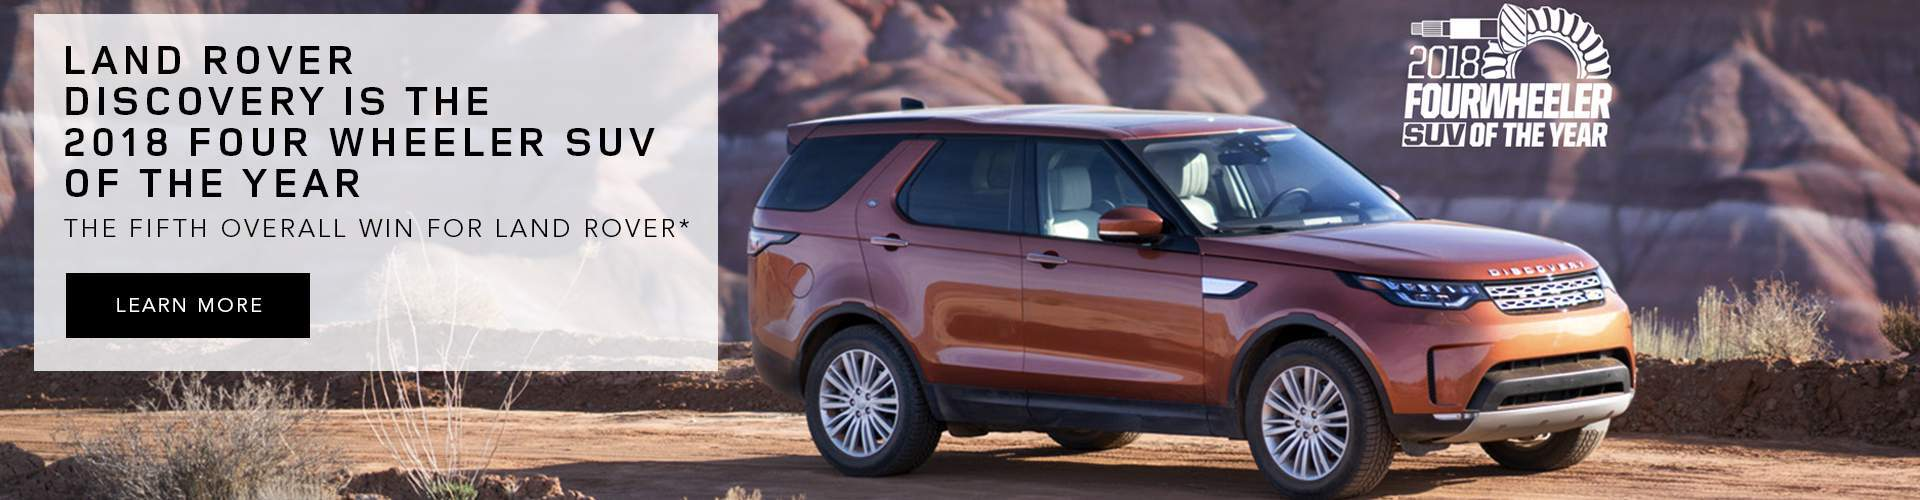 2018 Land Rover Discovery Four Wheeler of the Year